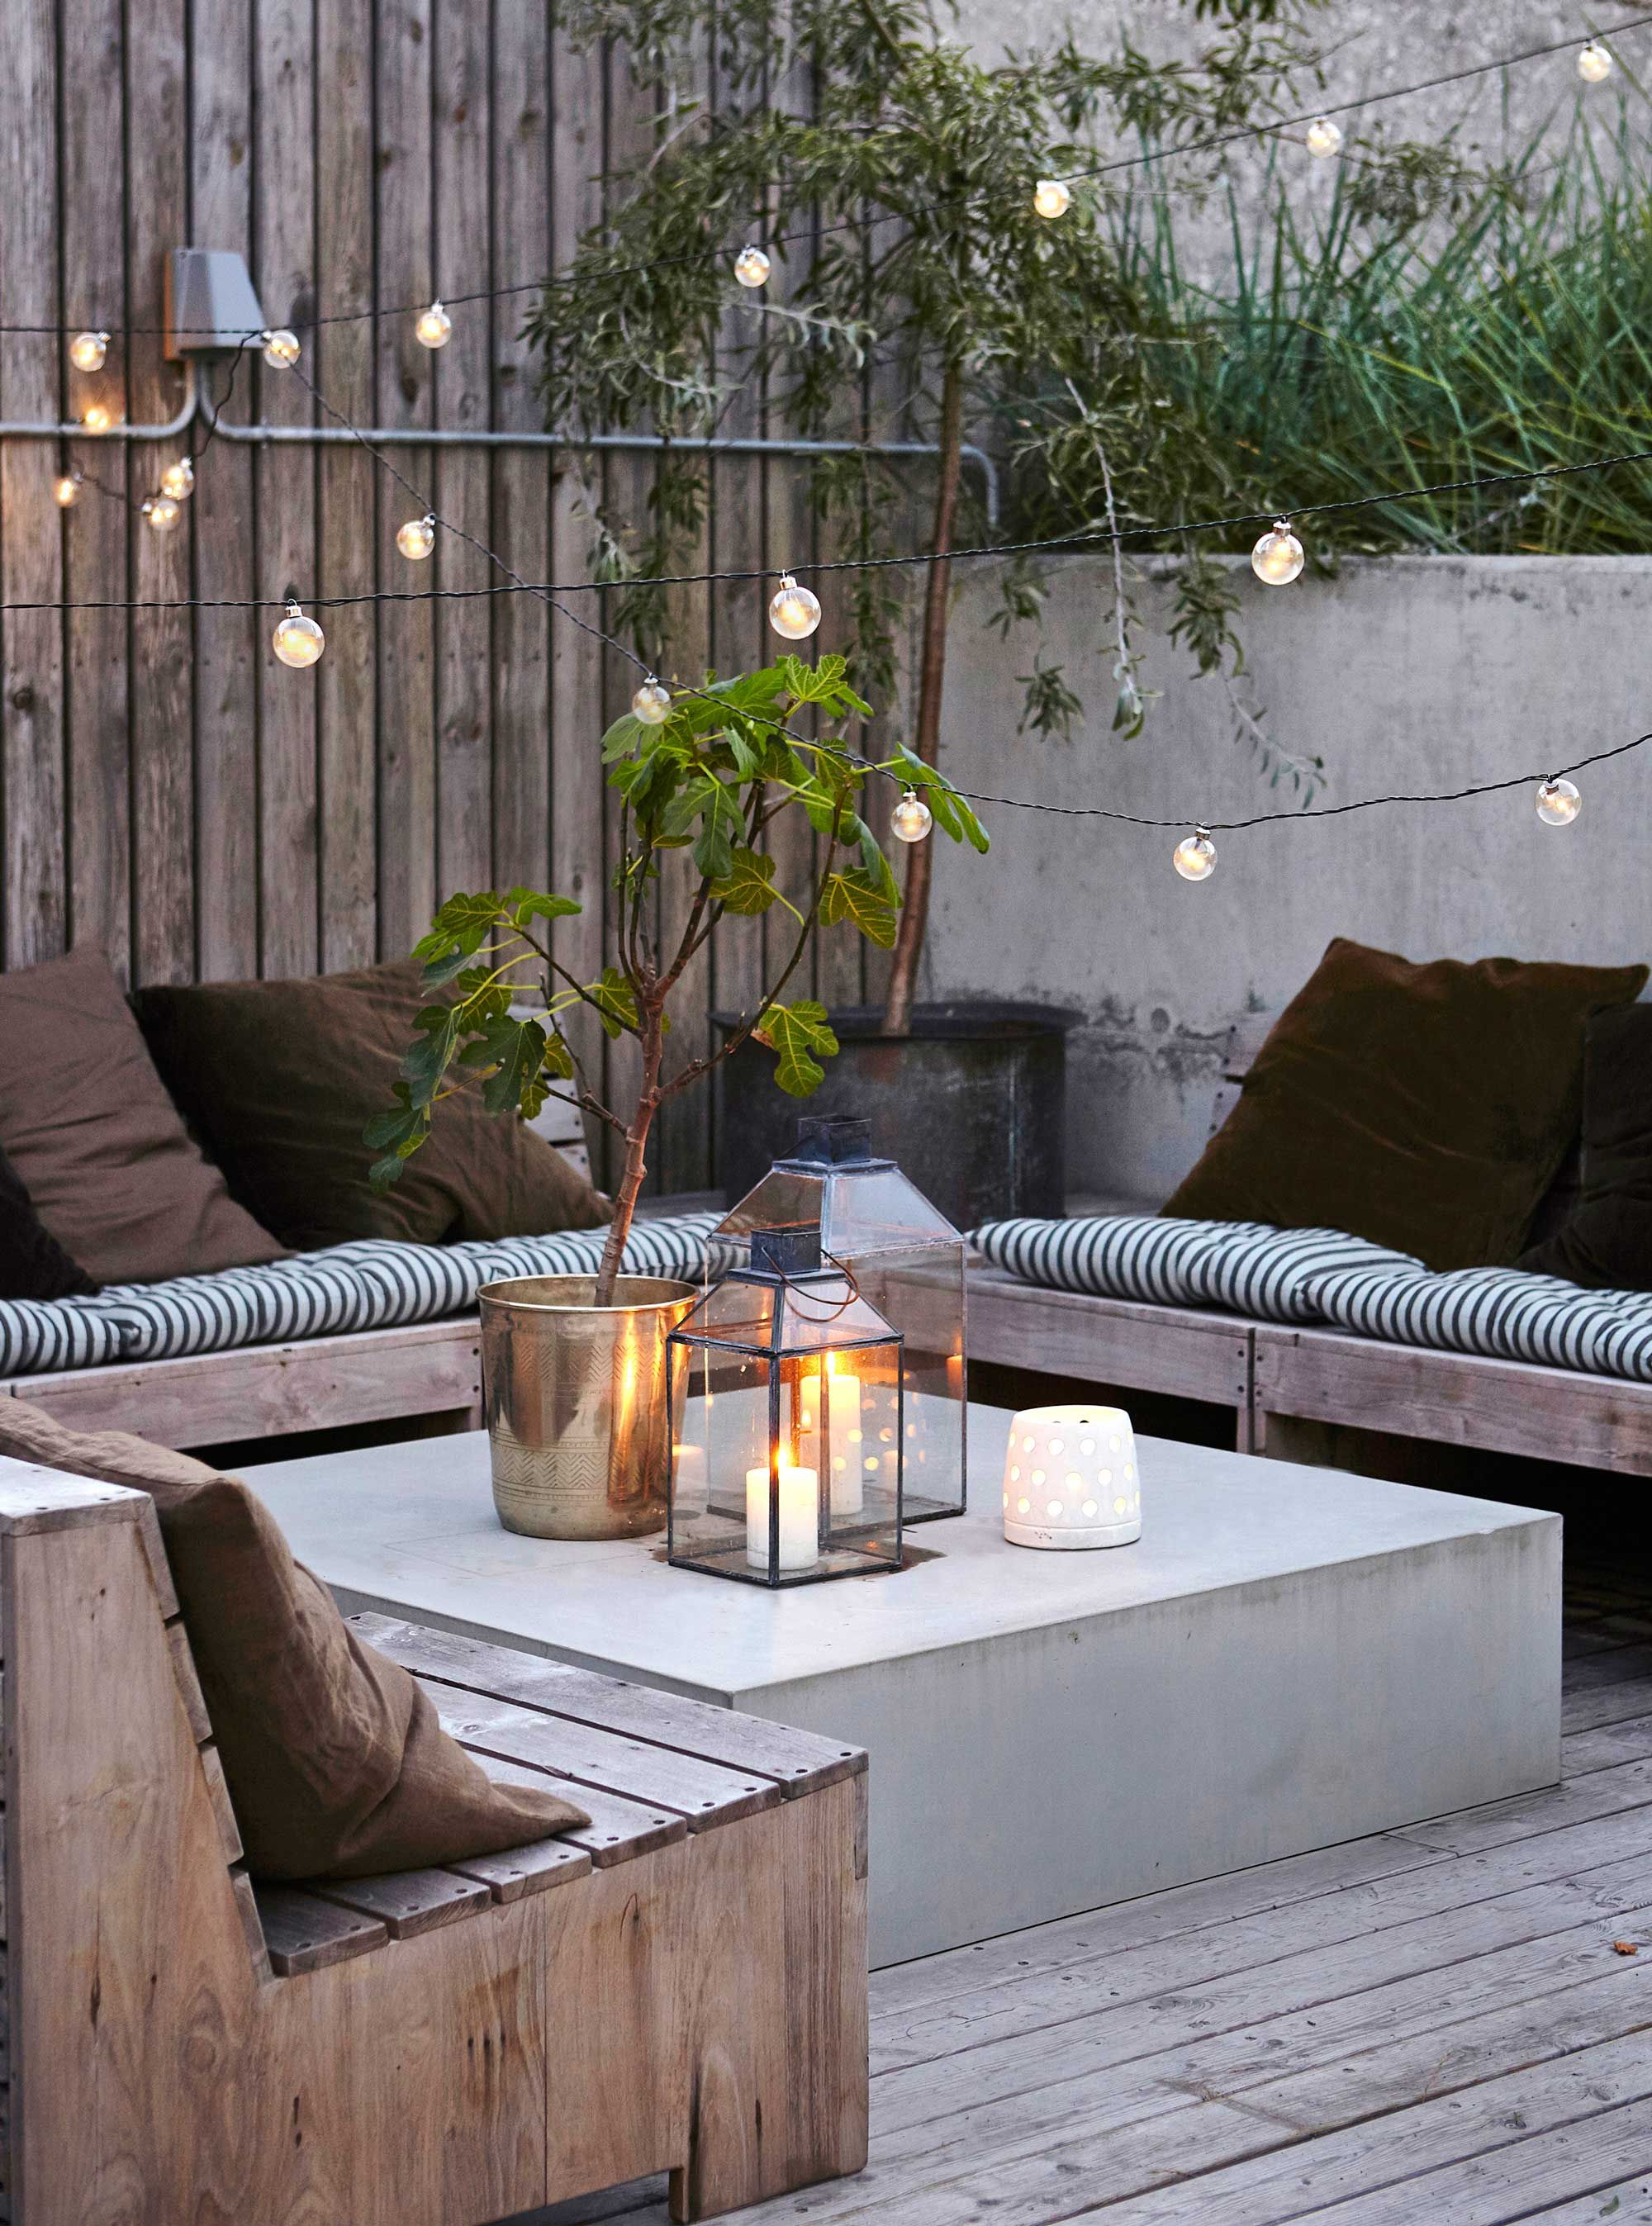 garten lounge ecke stimmung lichter garden design pinterest garten lounge sitzbank und. Black Bedroom Furniture Sets. Home Design Ideas